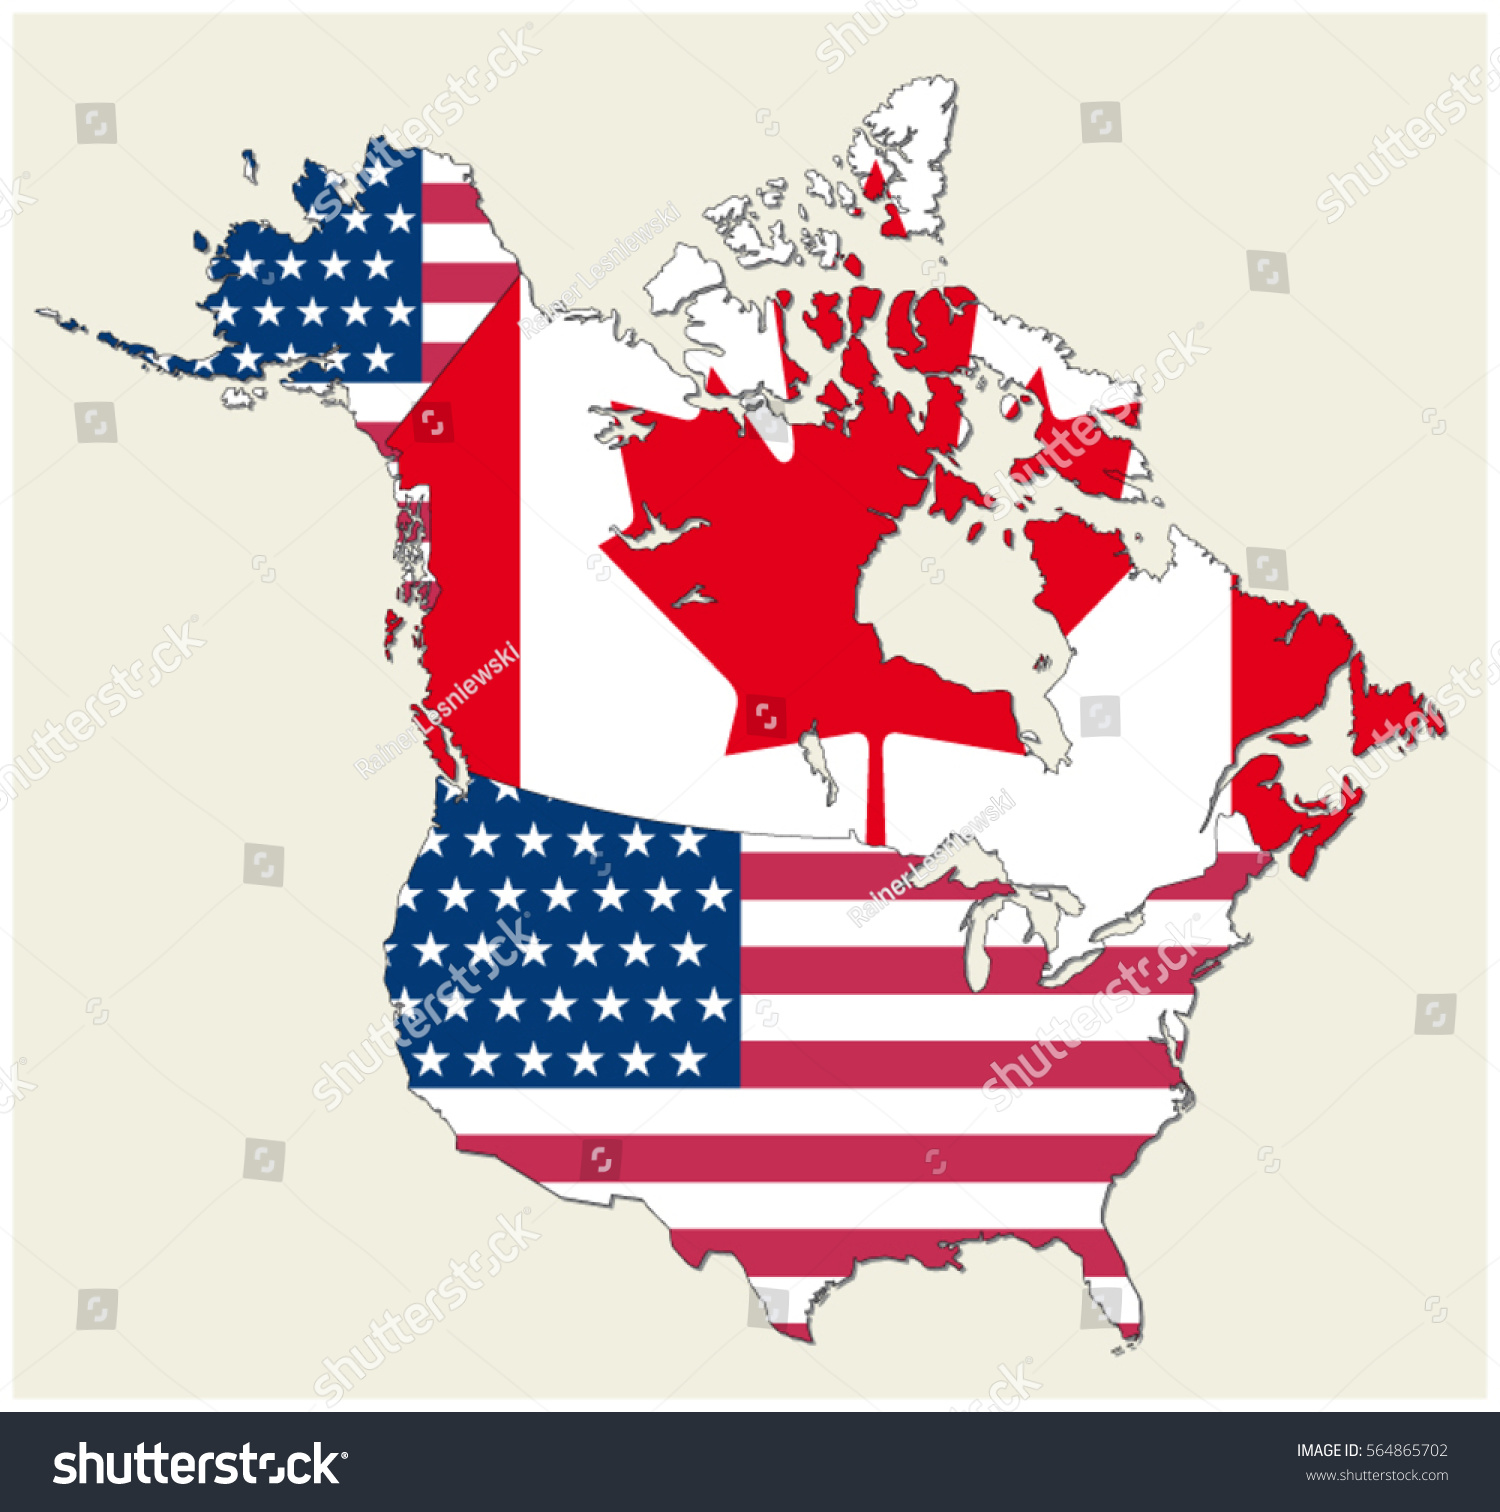 Map States Canada Usa Represented Flag Stock Vector (Royalty Free ...